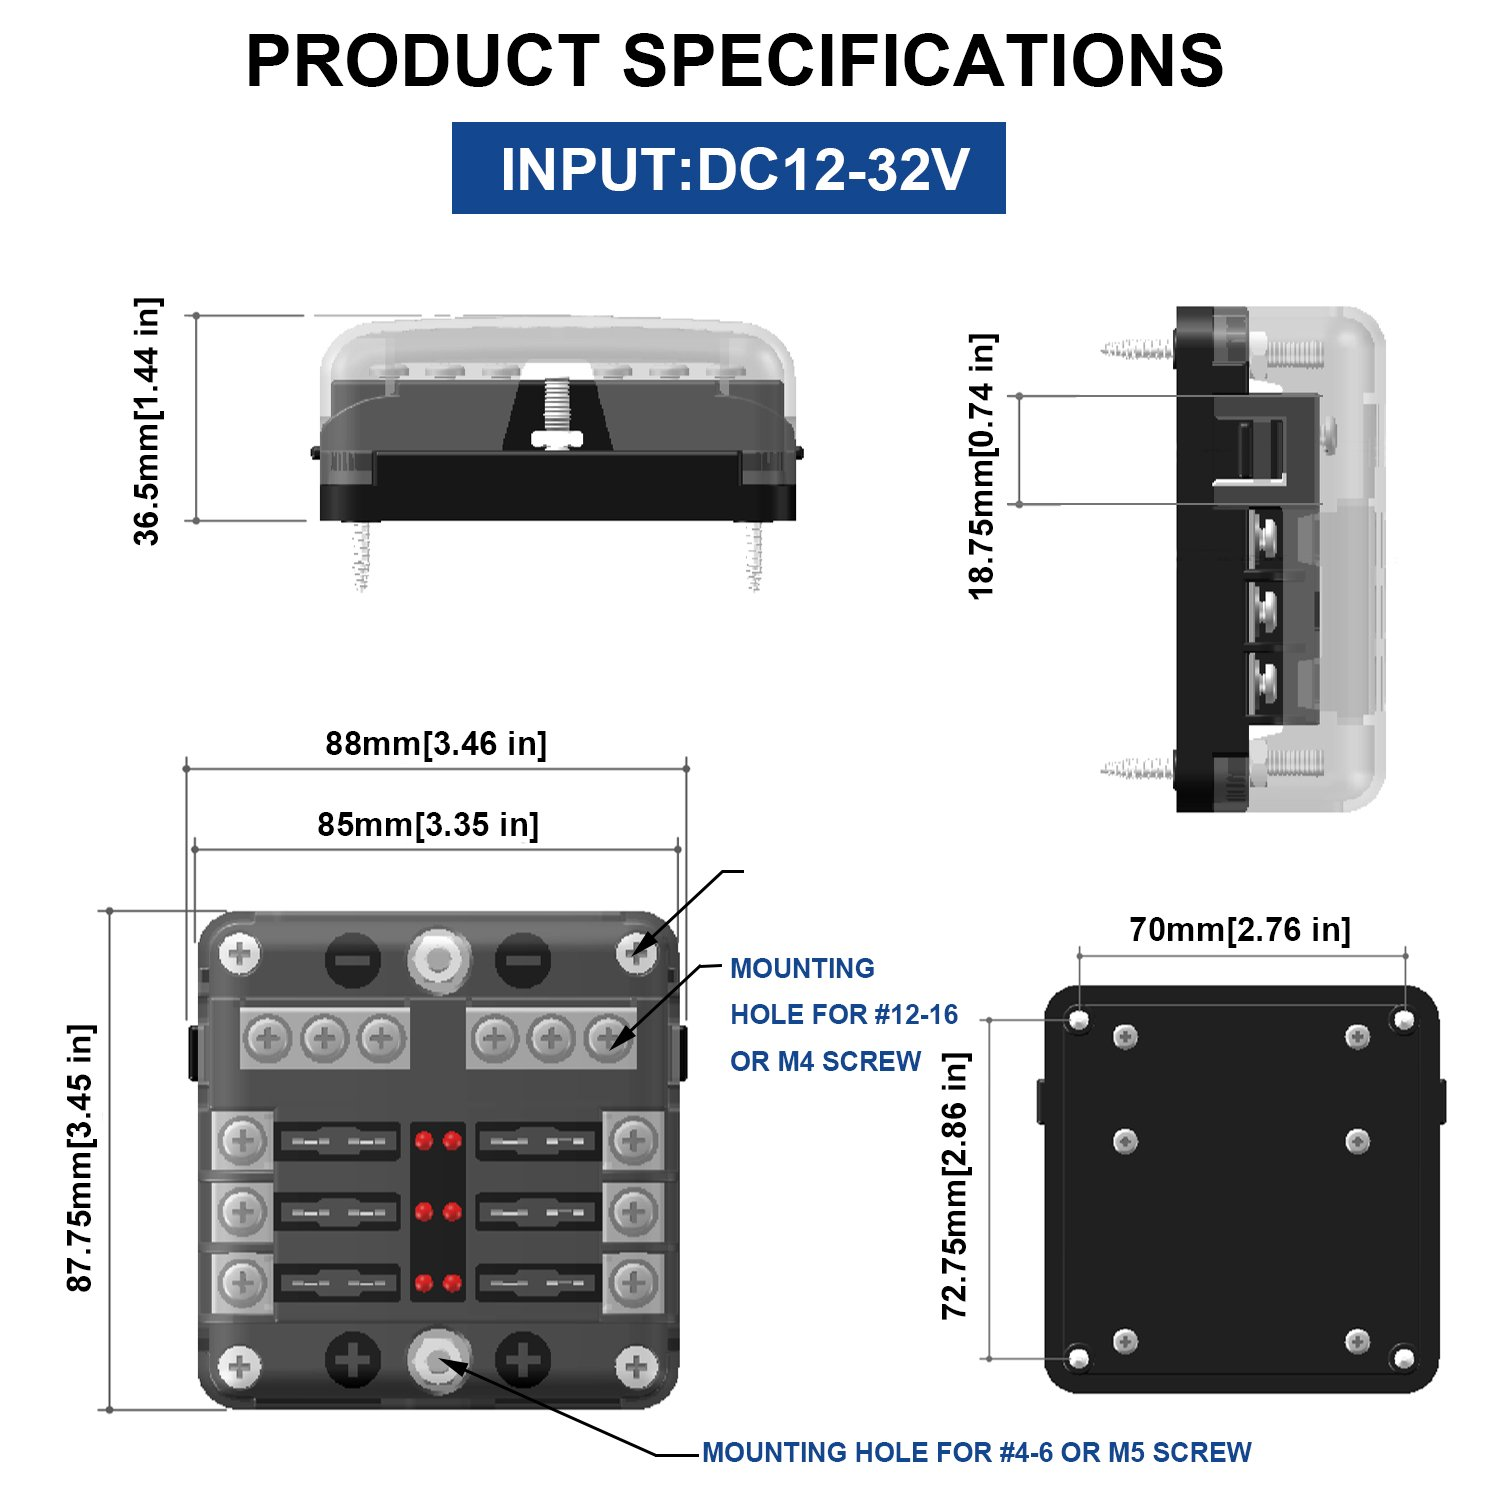 TURN RAISE 12 Way Blade Fuse Block,DC 32V 100 Amp Standard Fuse Holder Box With LED Indicatorfor//Dual Independent Positive Connections